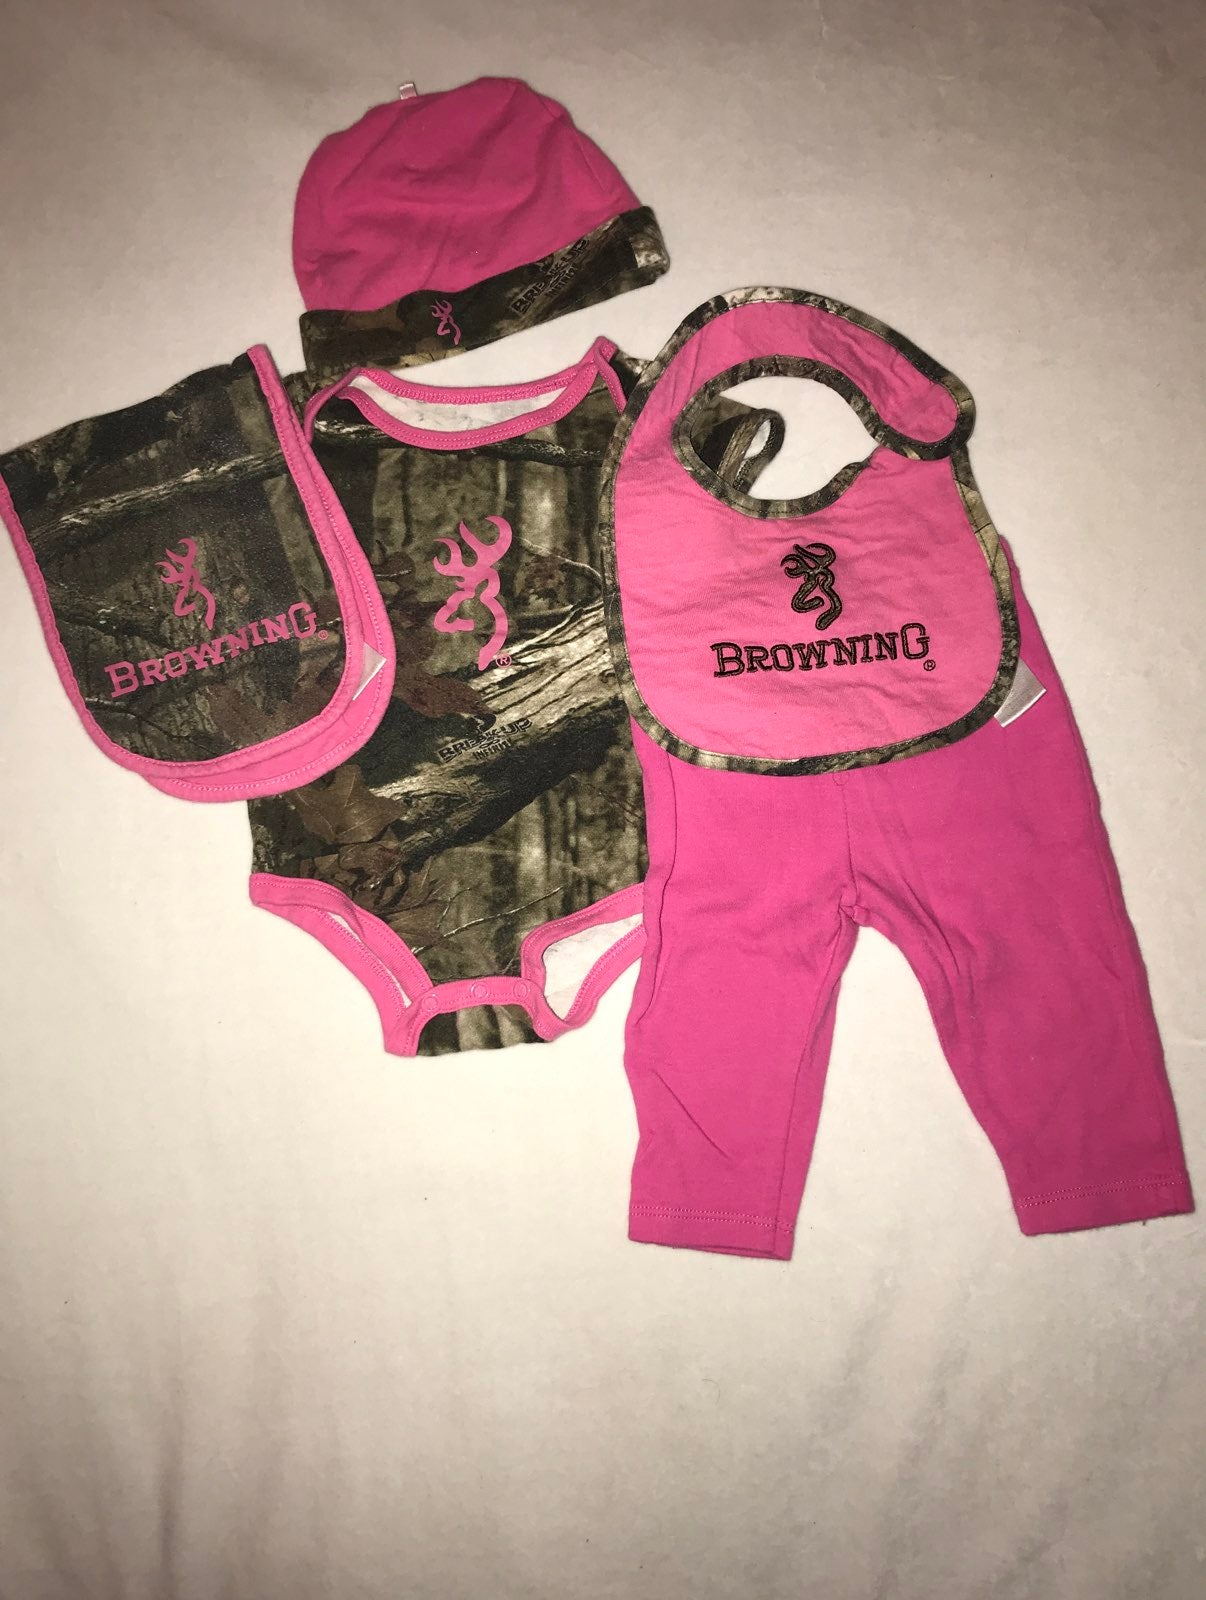 Browning baby girl 6 months set.